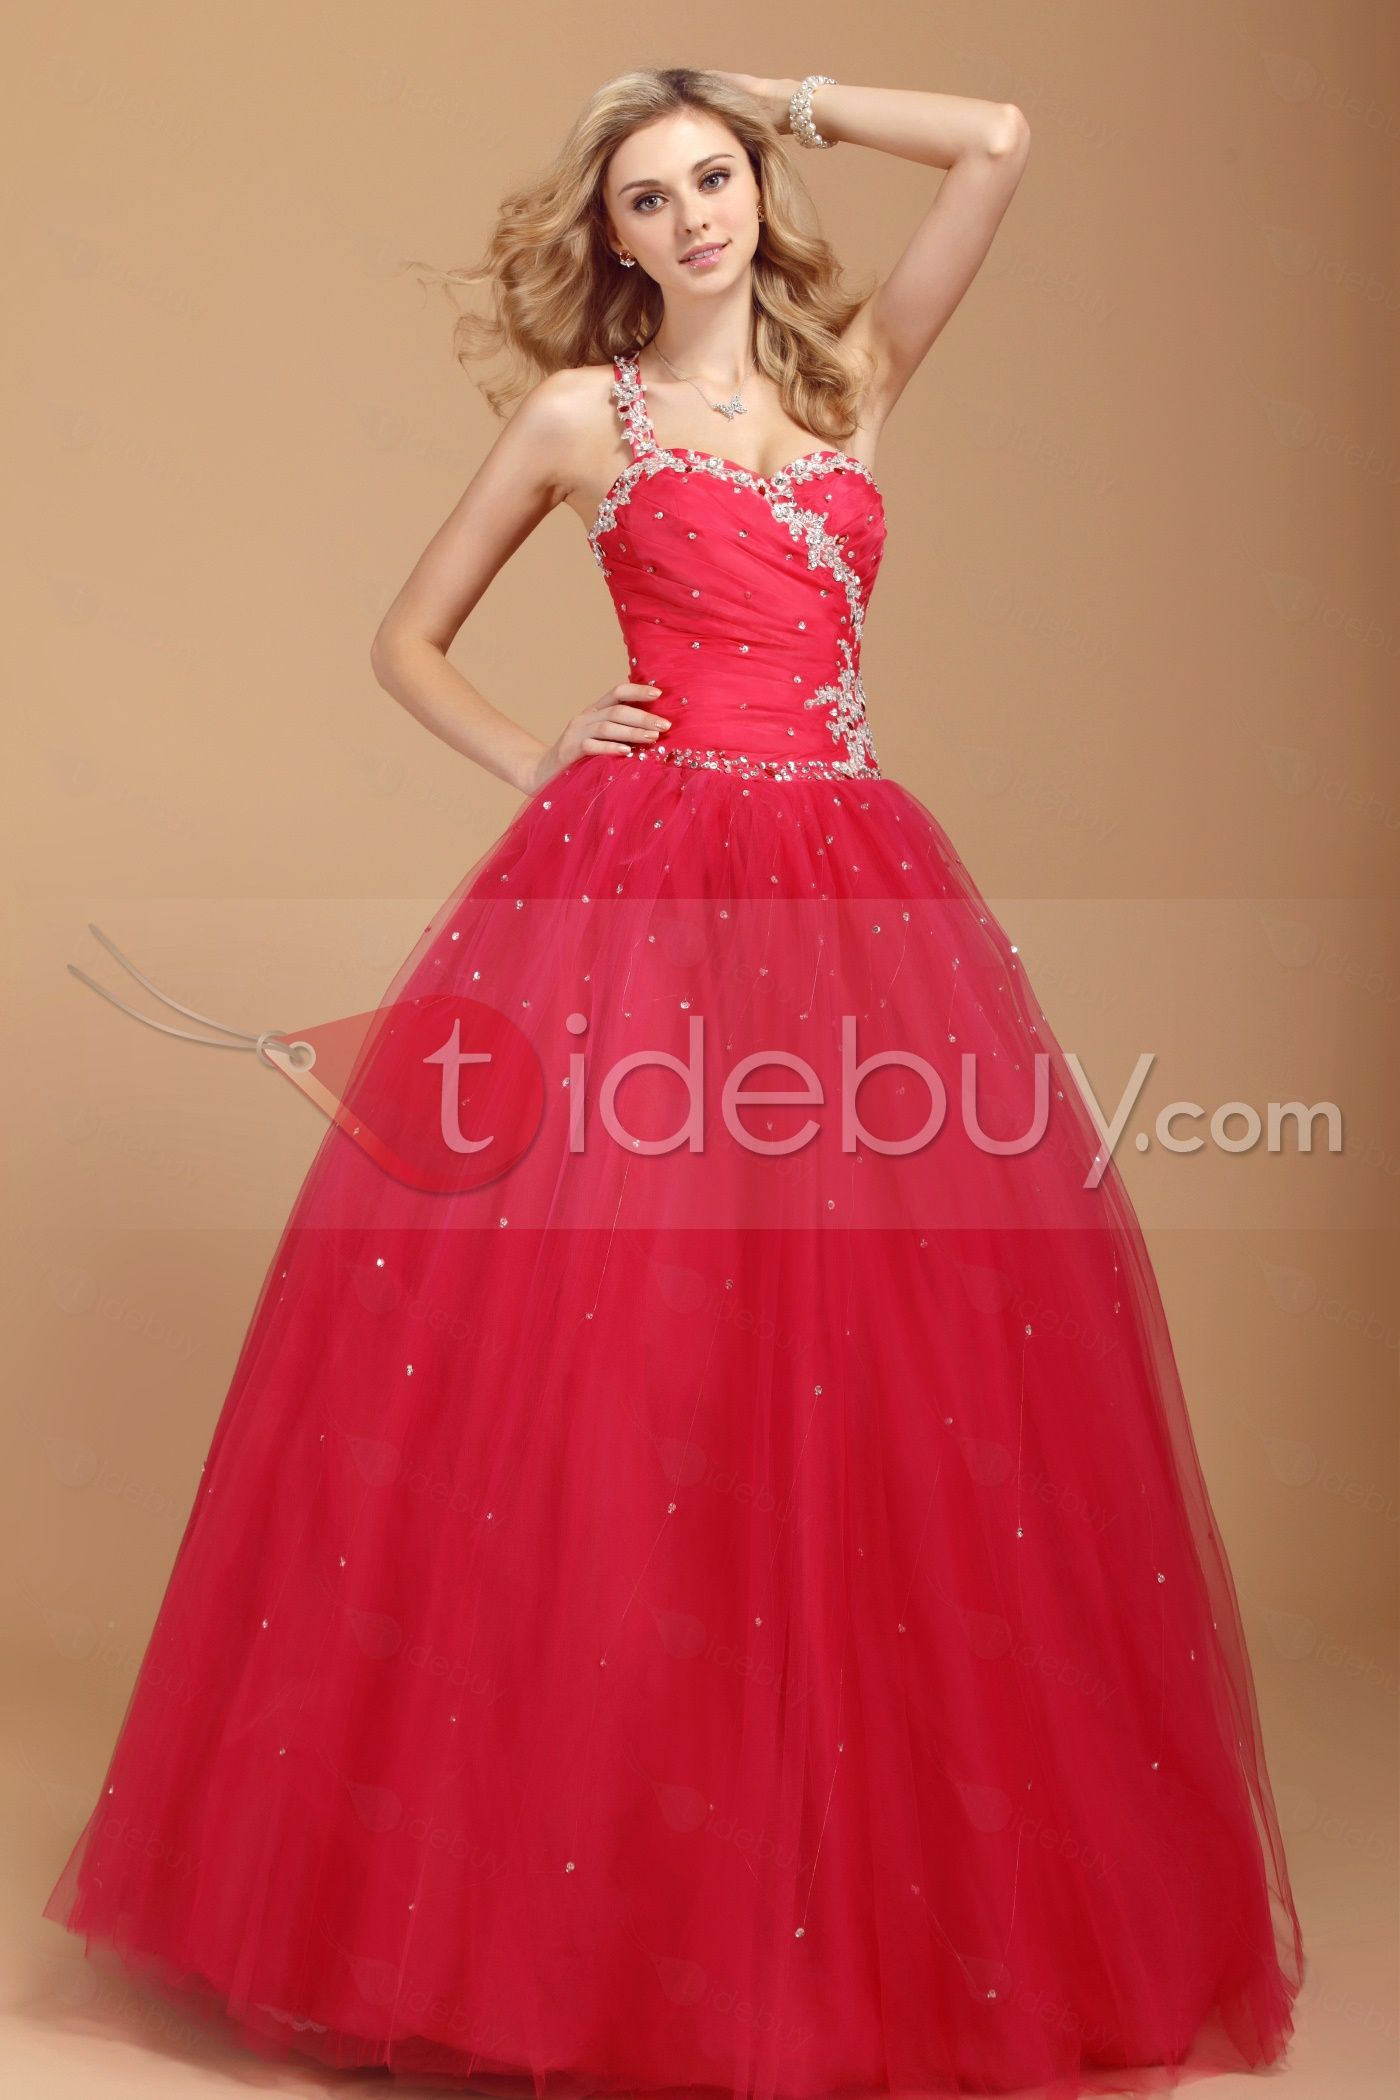 http://www.tidebuy.com/TAG/A/Asian-Style-Prom-Dresses.htm tidebuy ...